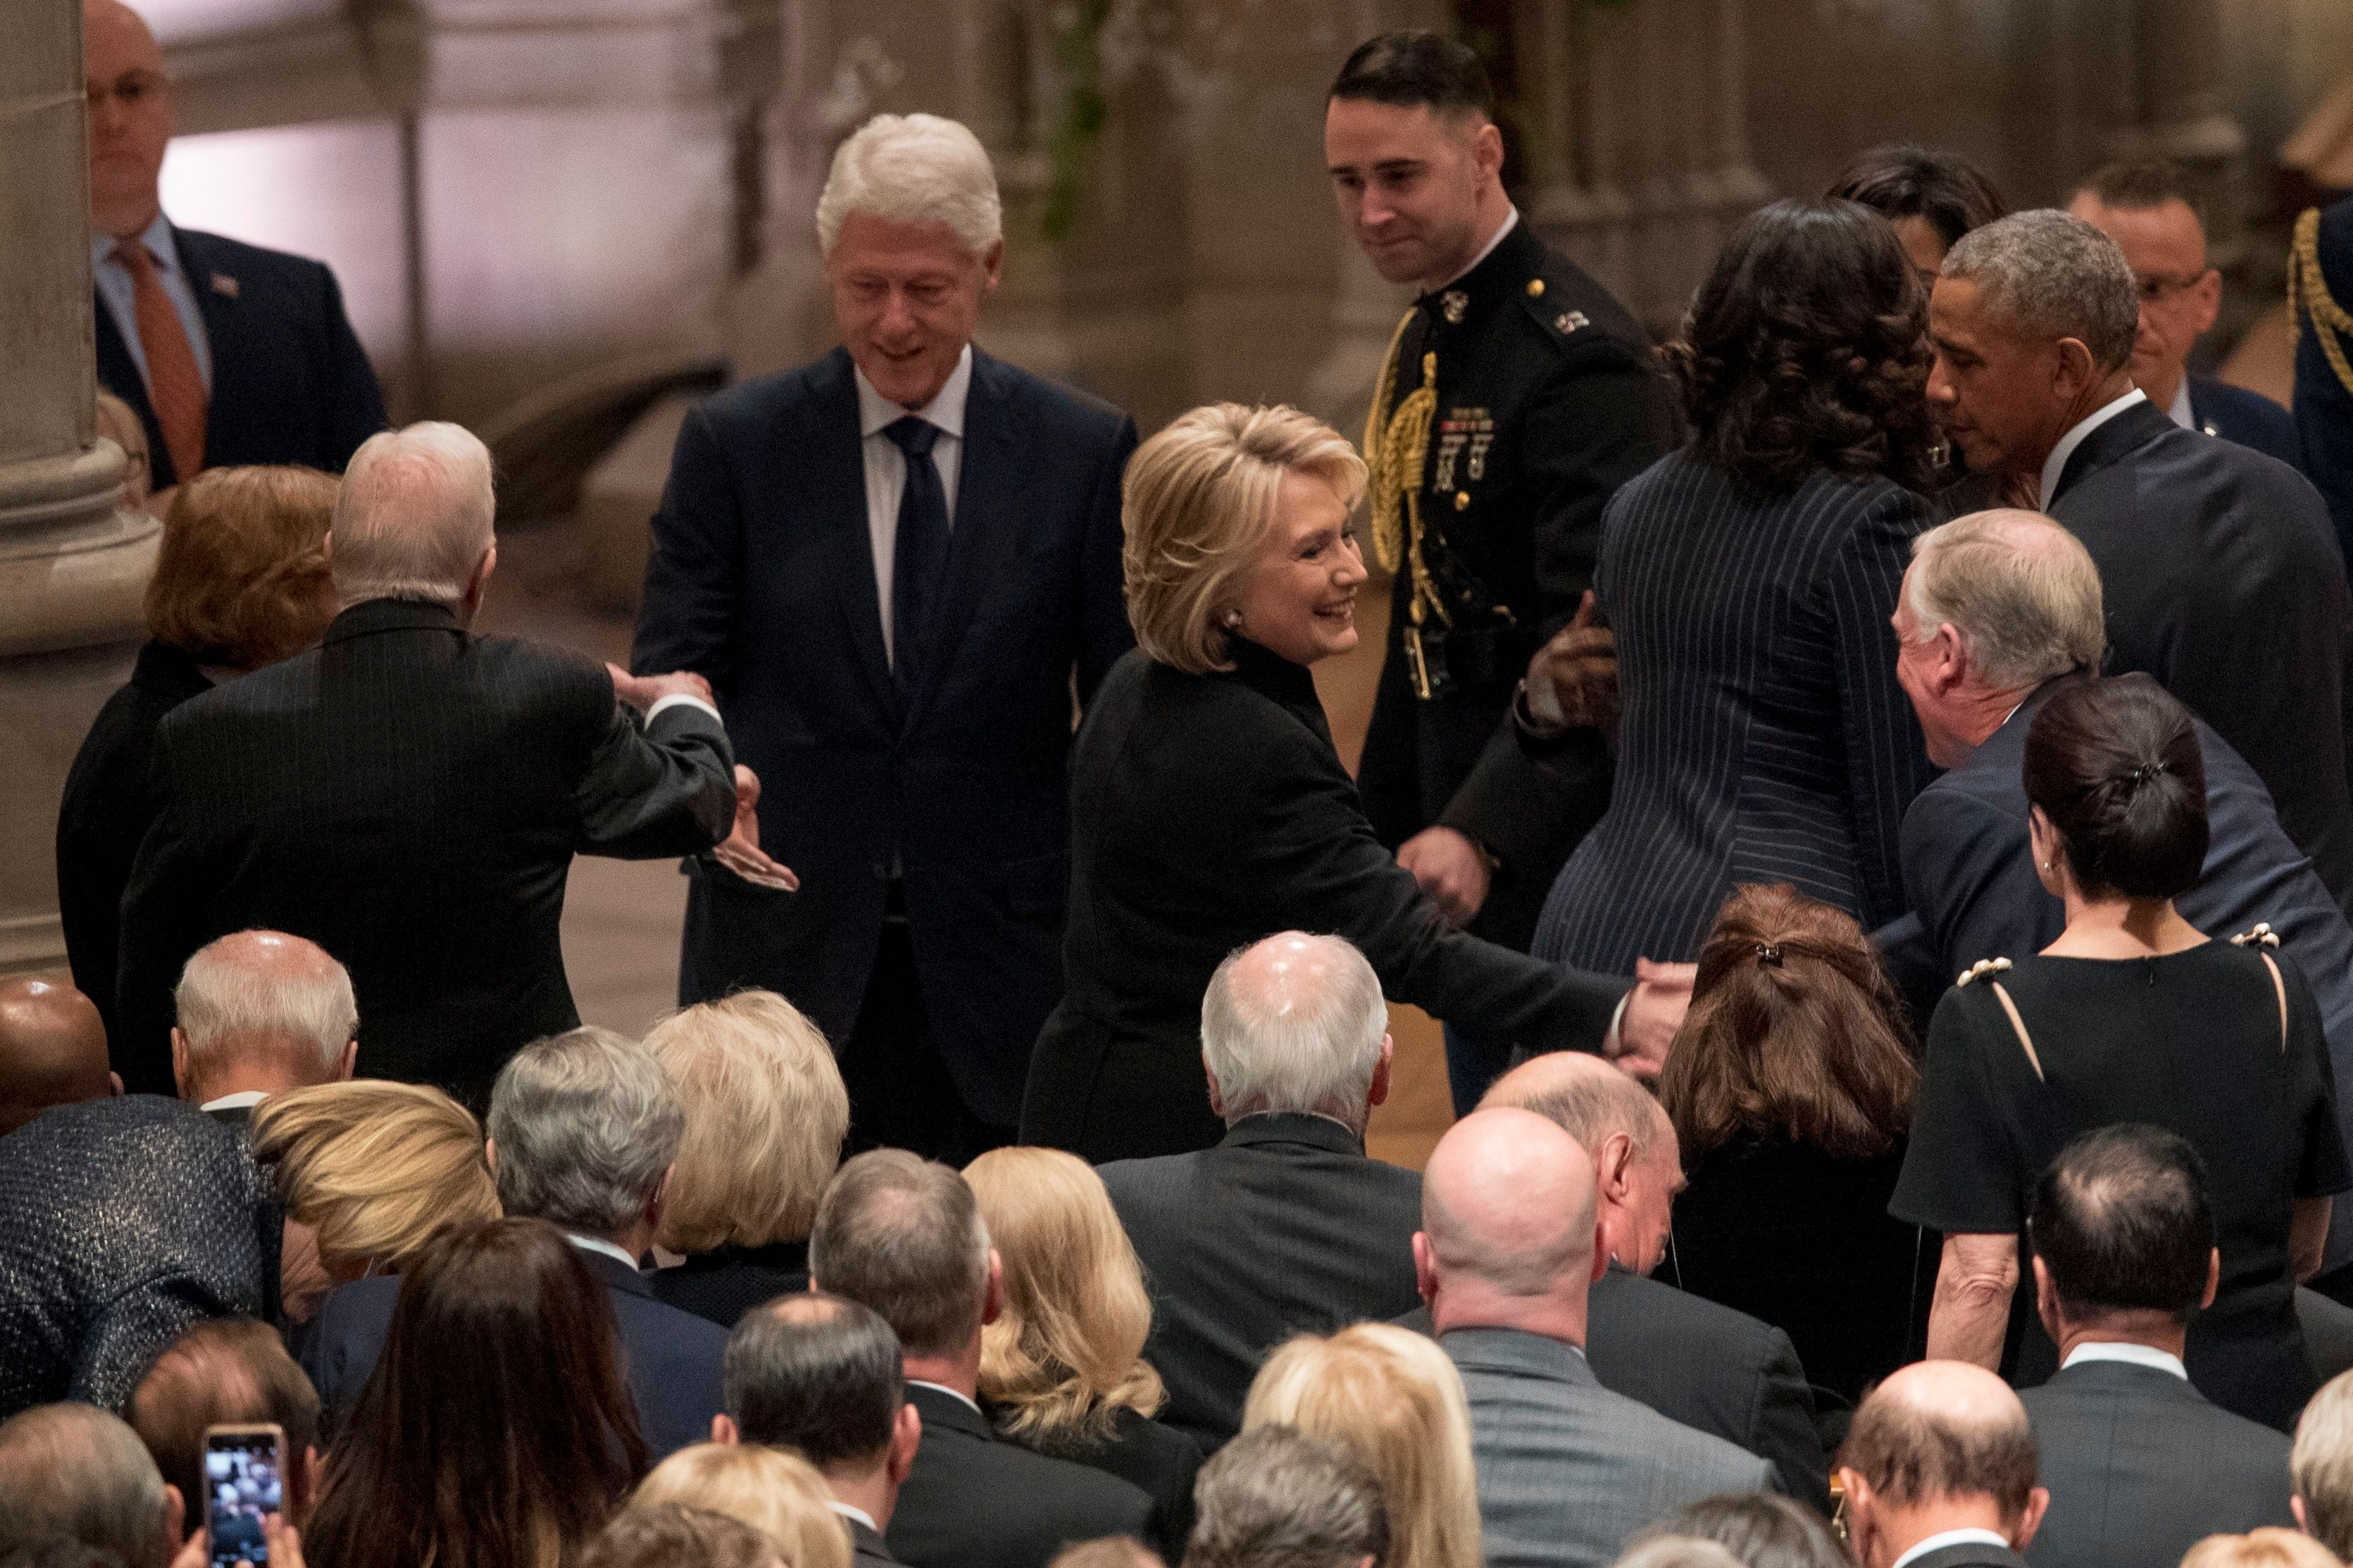 Former President Jimmy Carter, and former first lady Rosalynn Carter, greet former President Bill Clinton, as his wife, former Secretary of State Hillary Clinton, greets a guest before a State Funeral for former President George H.W. Bush at the National Cathedral, in Washington, DC on Dec. 5, 2018.